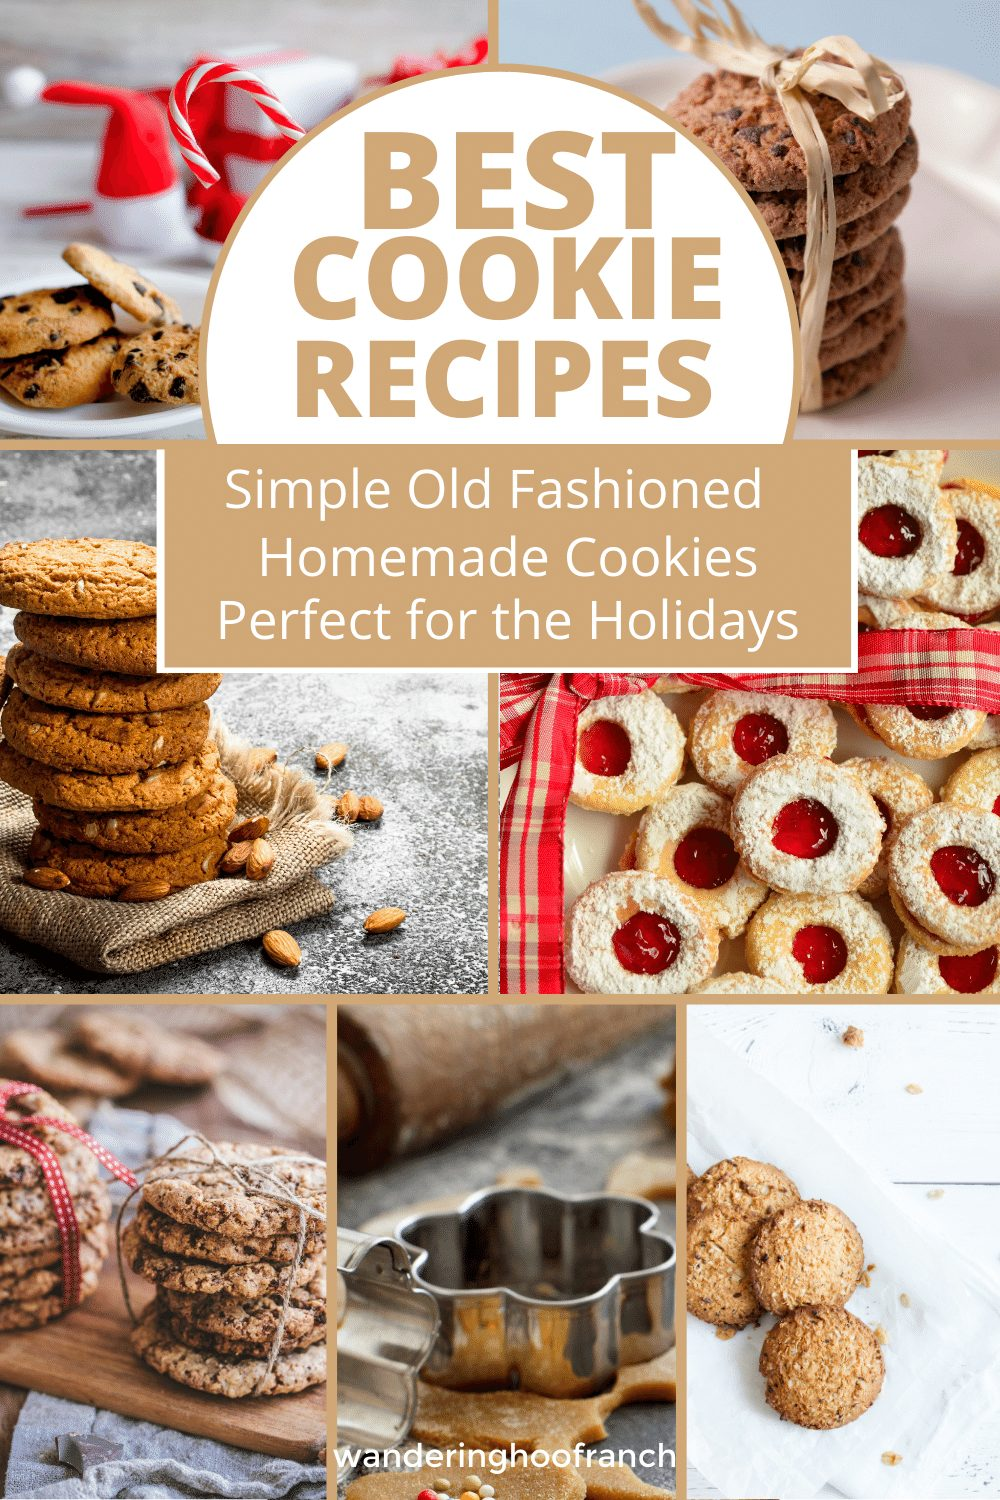 best cookie recipes for simple old fashioned homemade cookies perfect for the holidays